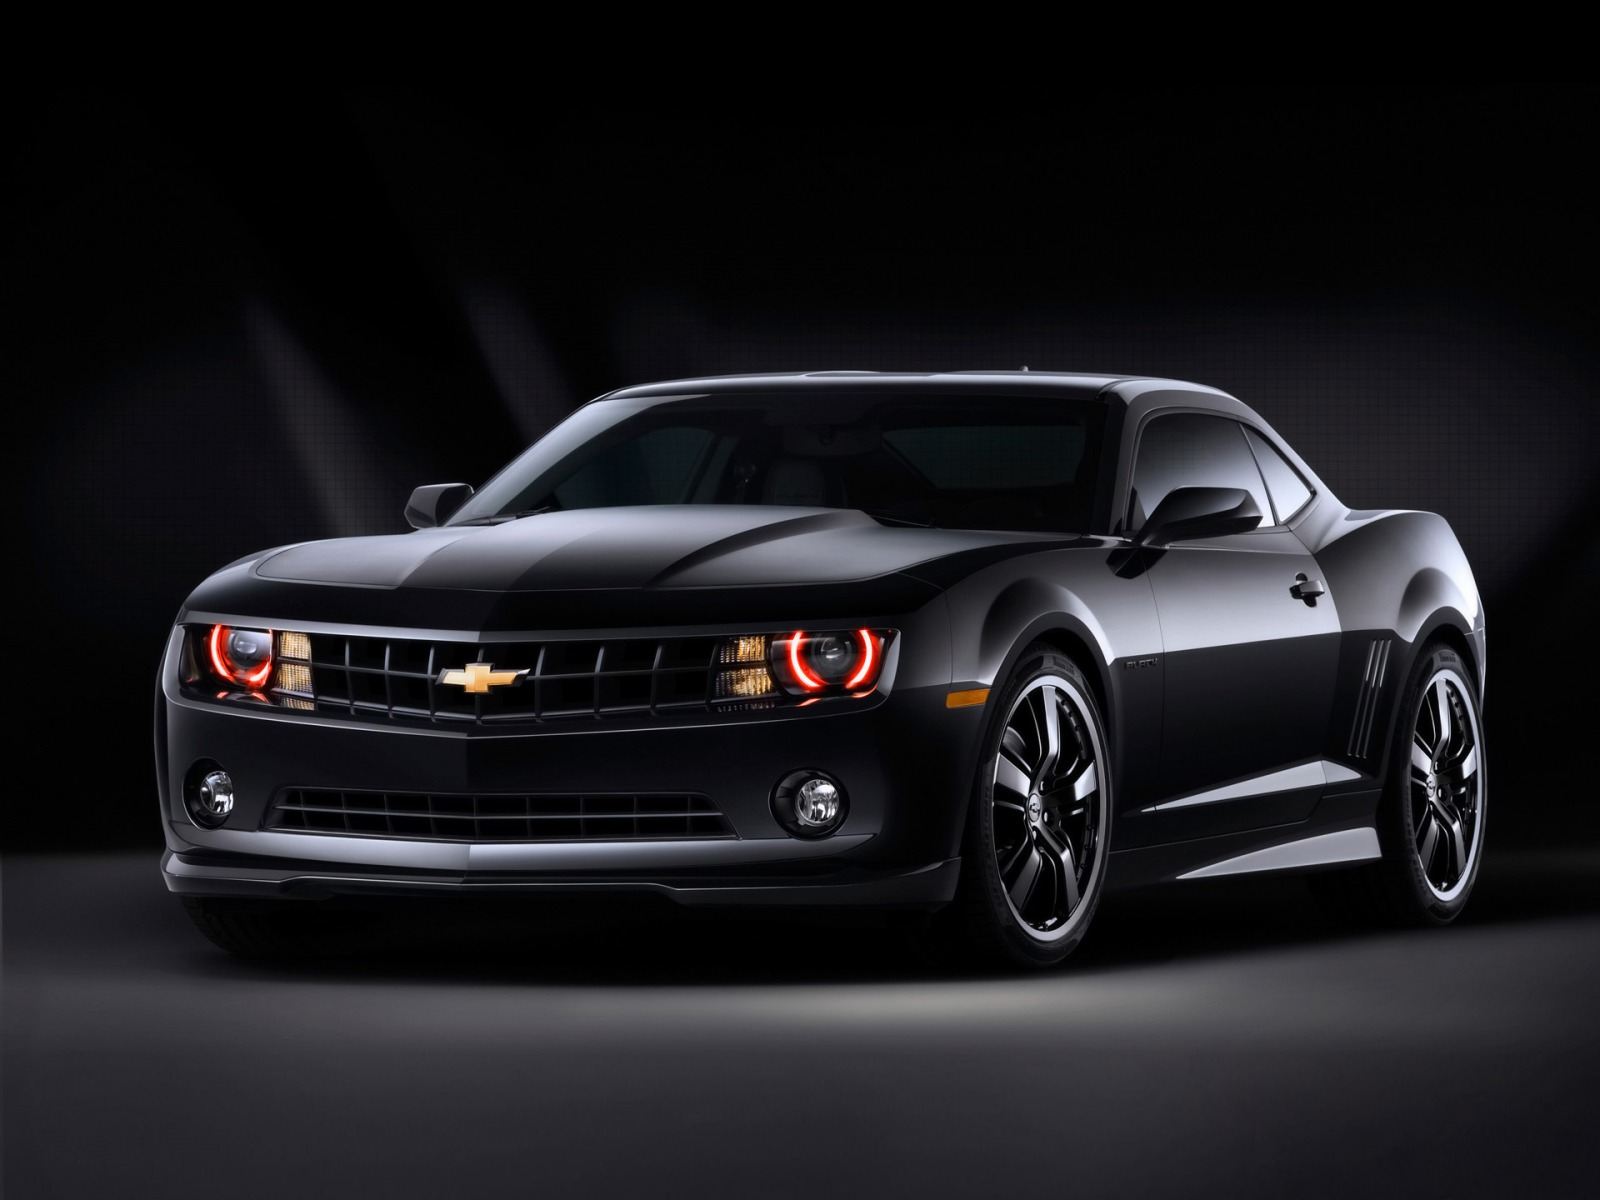 Chevrolet camaro black concept wallpaper chevrolet cars wallpapers chevrolet camaro black concept wallpaper chevrolet cars wallpapers voltagebd Image collections